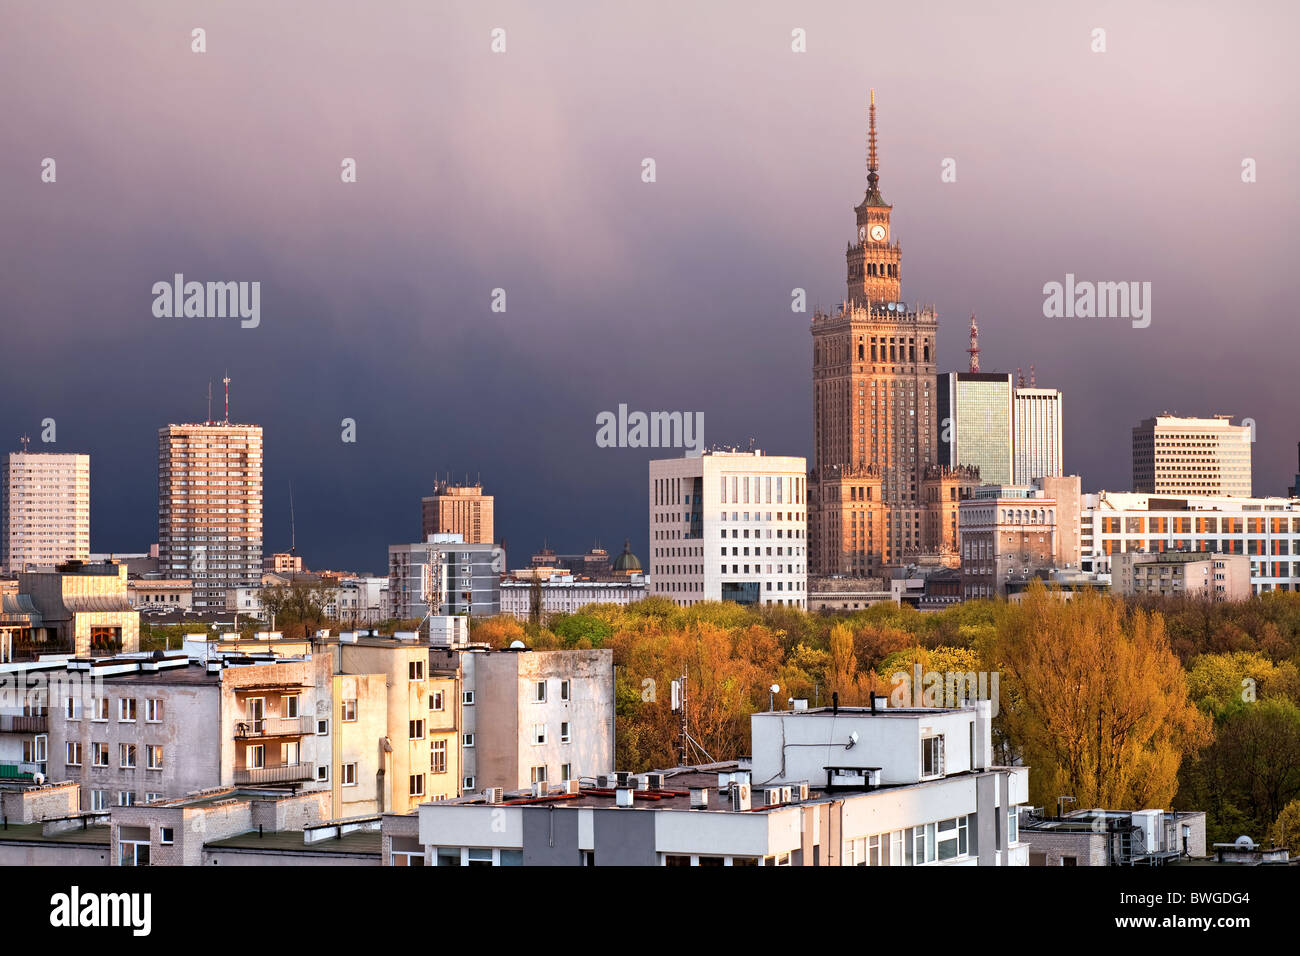 Varsovie, capitale de la Pologne, dotée d''un palais de la Culture et de la Science, Srodmiescie district. Photo Stock